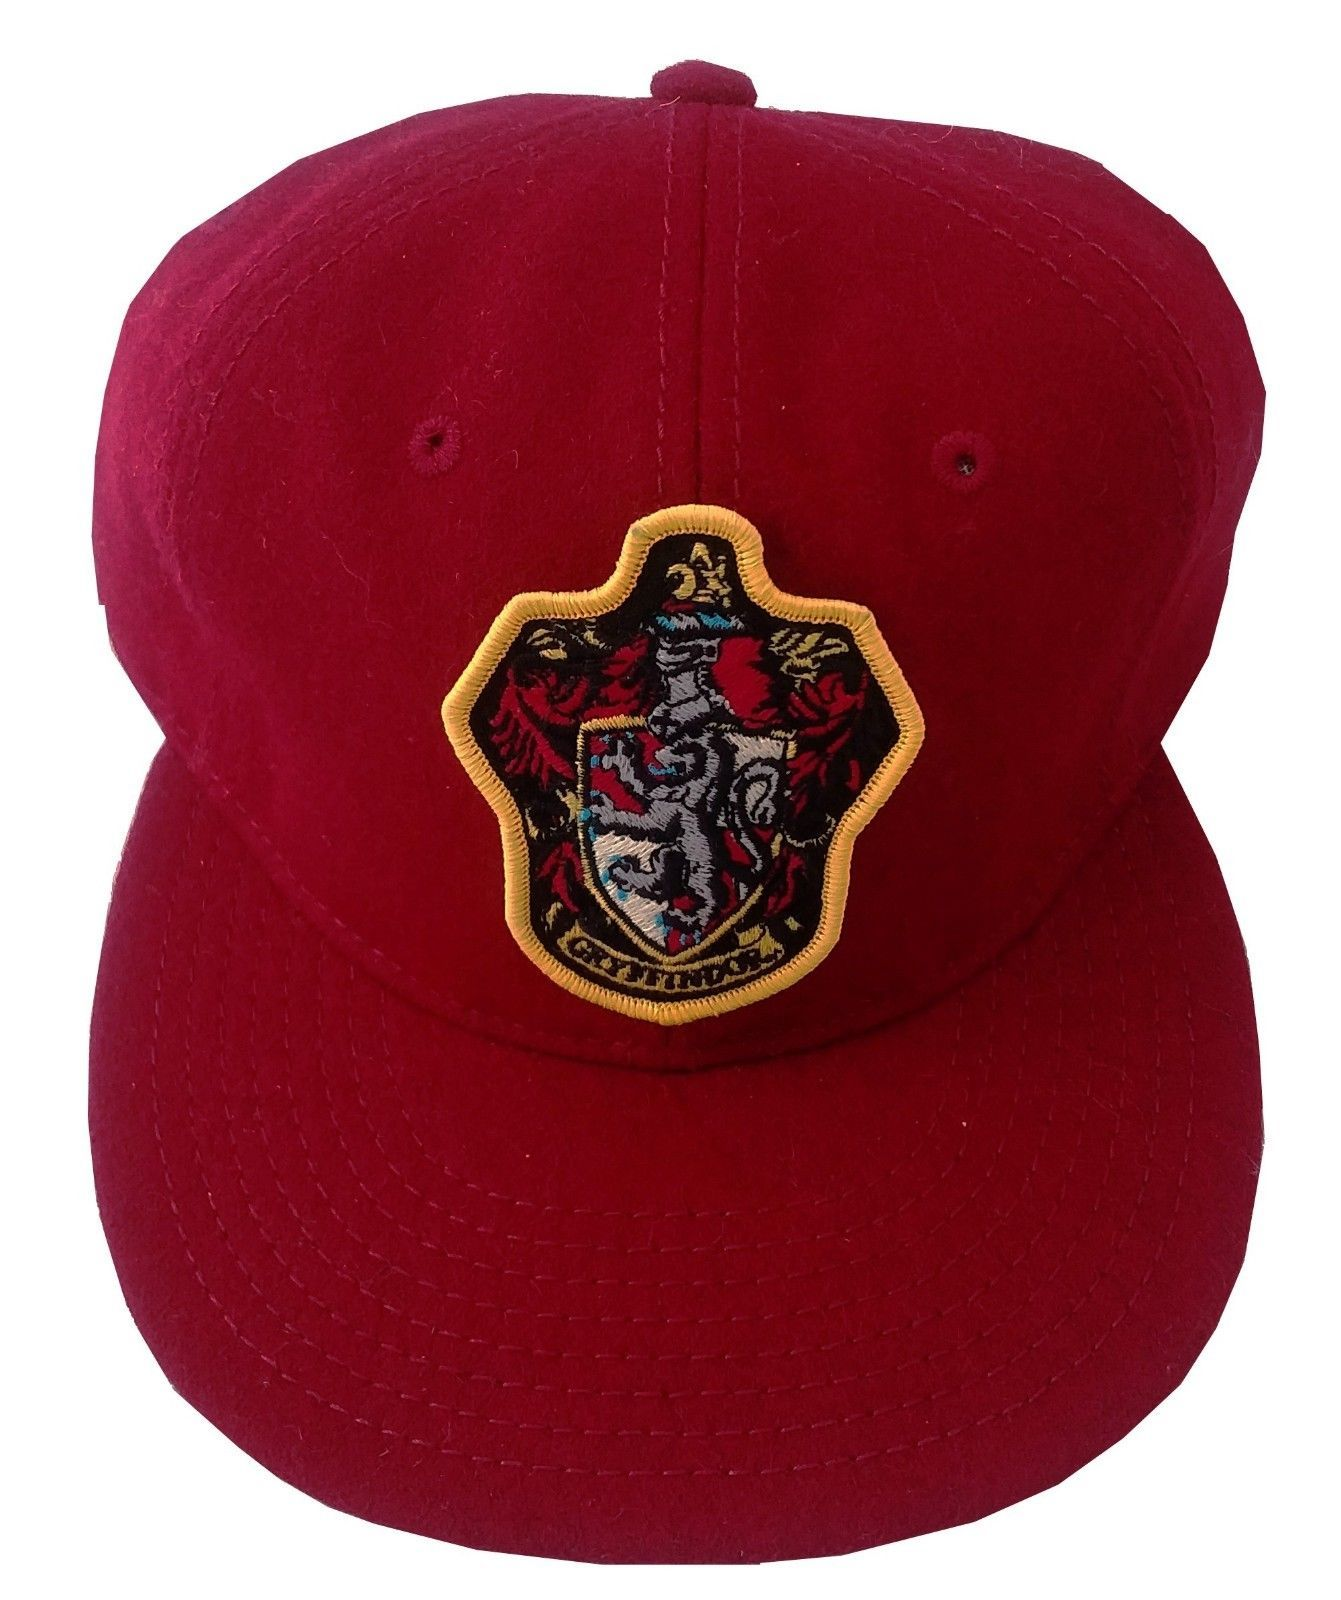 06a55db5f98db Harry Potter Gryffindor Lion Crest Baseball and 50 similar items